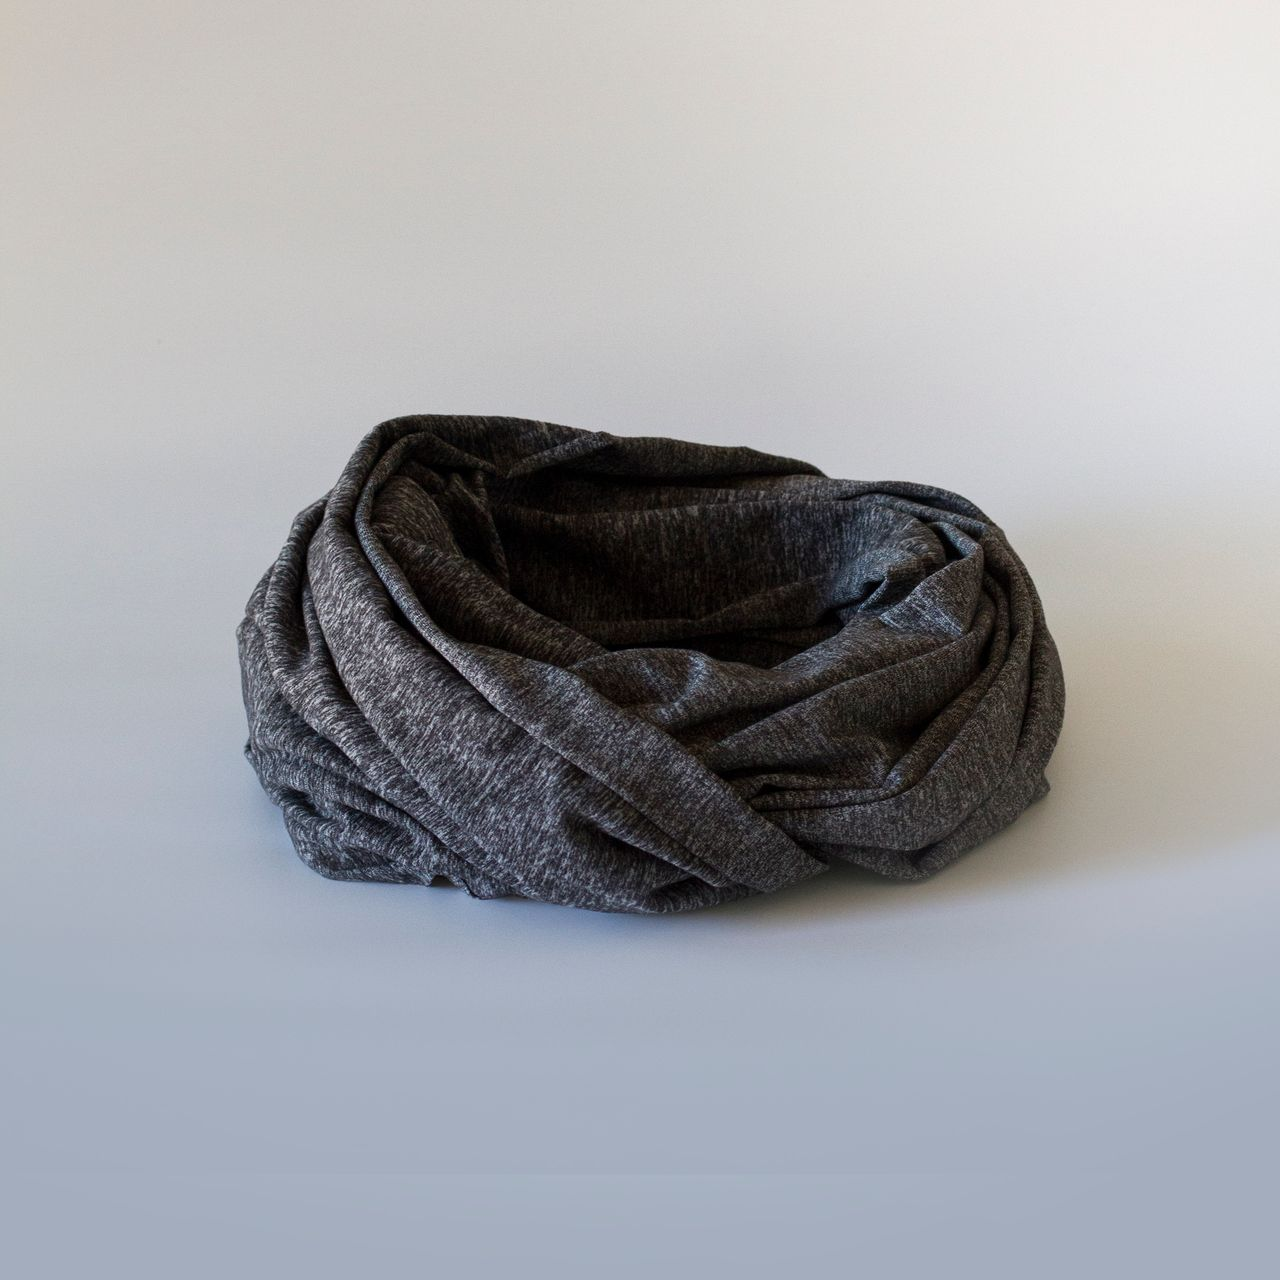 Lululemon Vinyasa Scarf *Rulu - Heathered Black